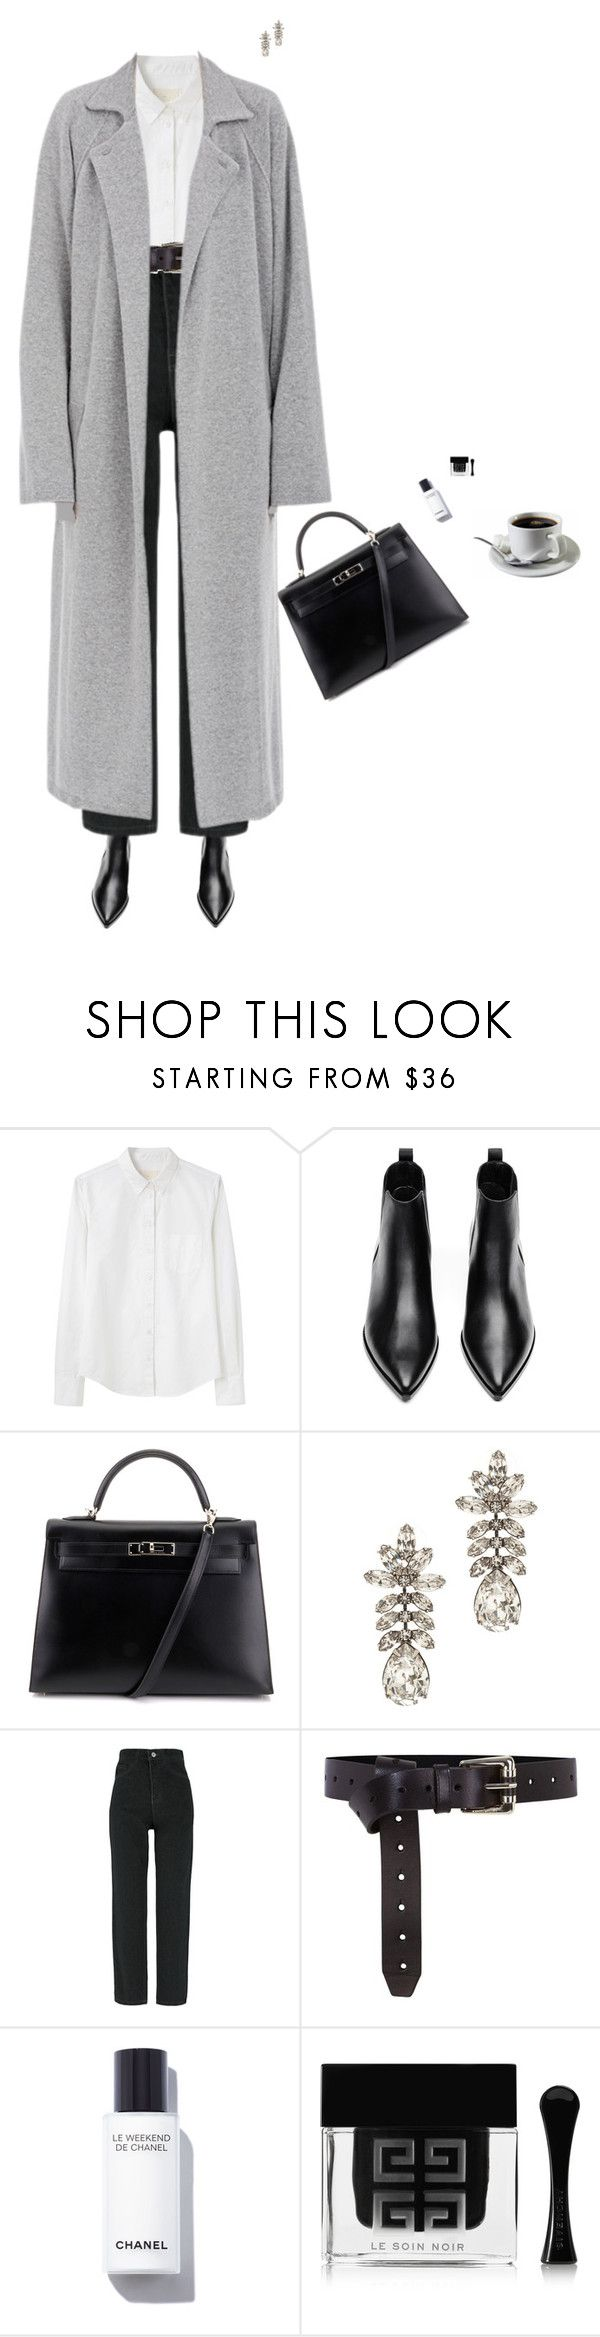 """""""classic style"""" by djulia-tarasova ❤ liked on Polyvore featuring Band of Outsiders, Acne Studios, Hermès, Tom Binns, Karen Millen, Chanel and Givenchy"""